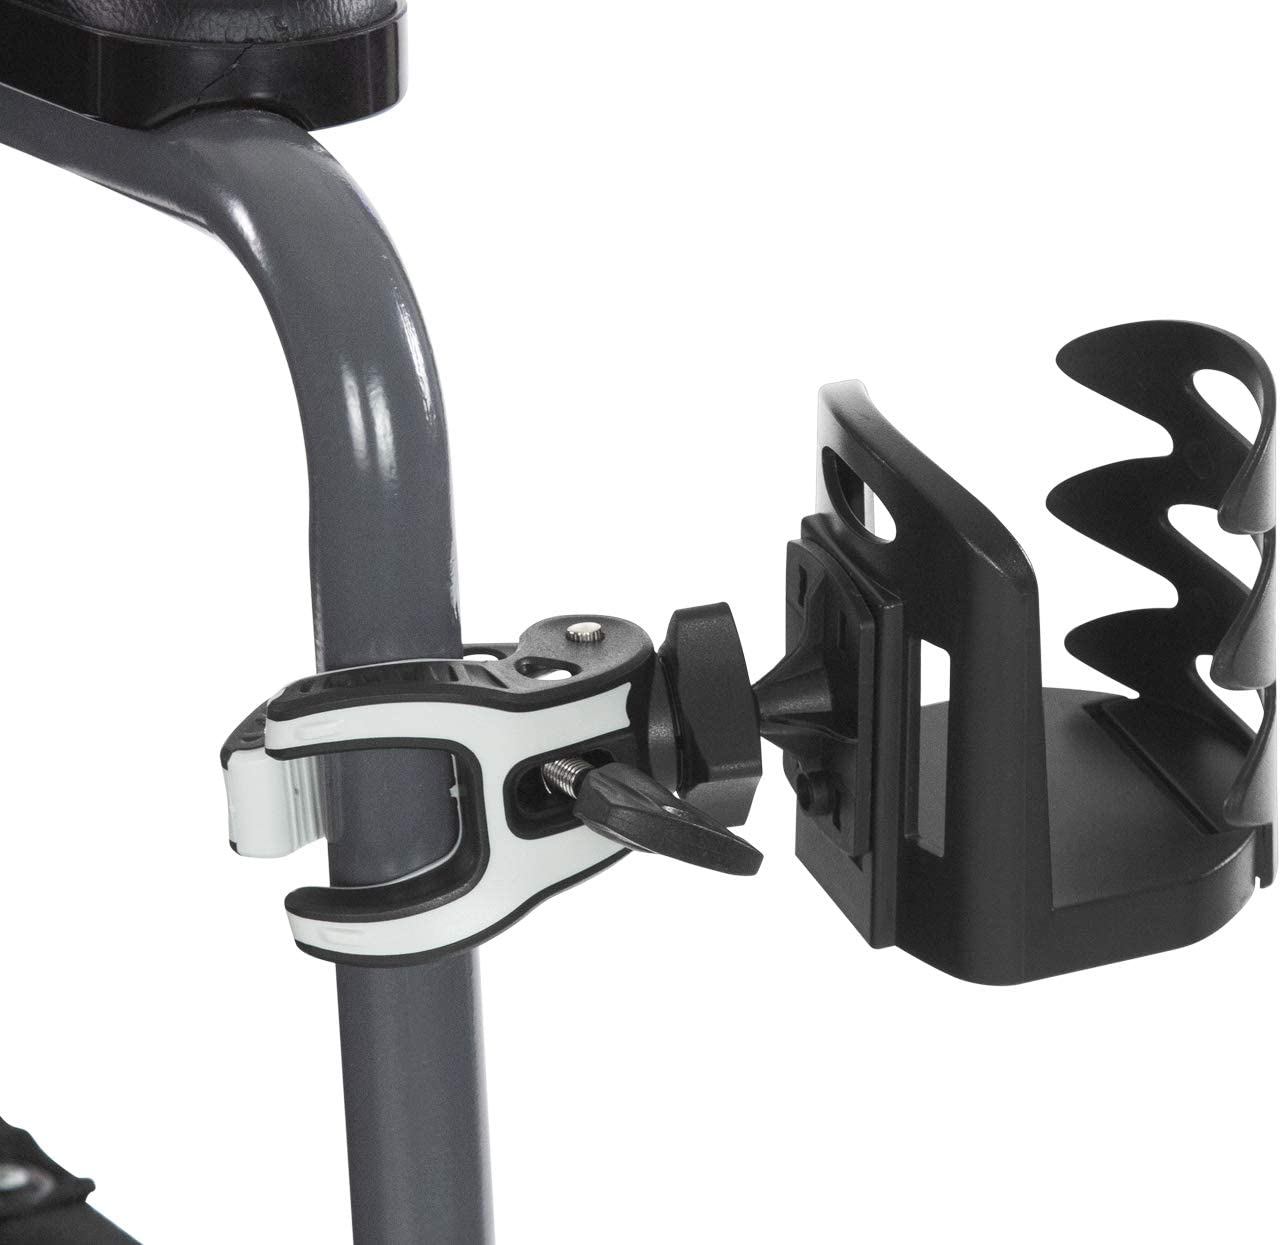 Vive Attachable Cup Holder - Cupholder for Stroller, Wheelchair, Desk, Water Bottle, Coffee Mug, Drink Glass, Can - Adjustable Mountable Clip for Bike, Rollator - Large, Universal, Portable with Clamp